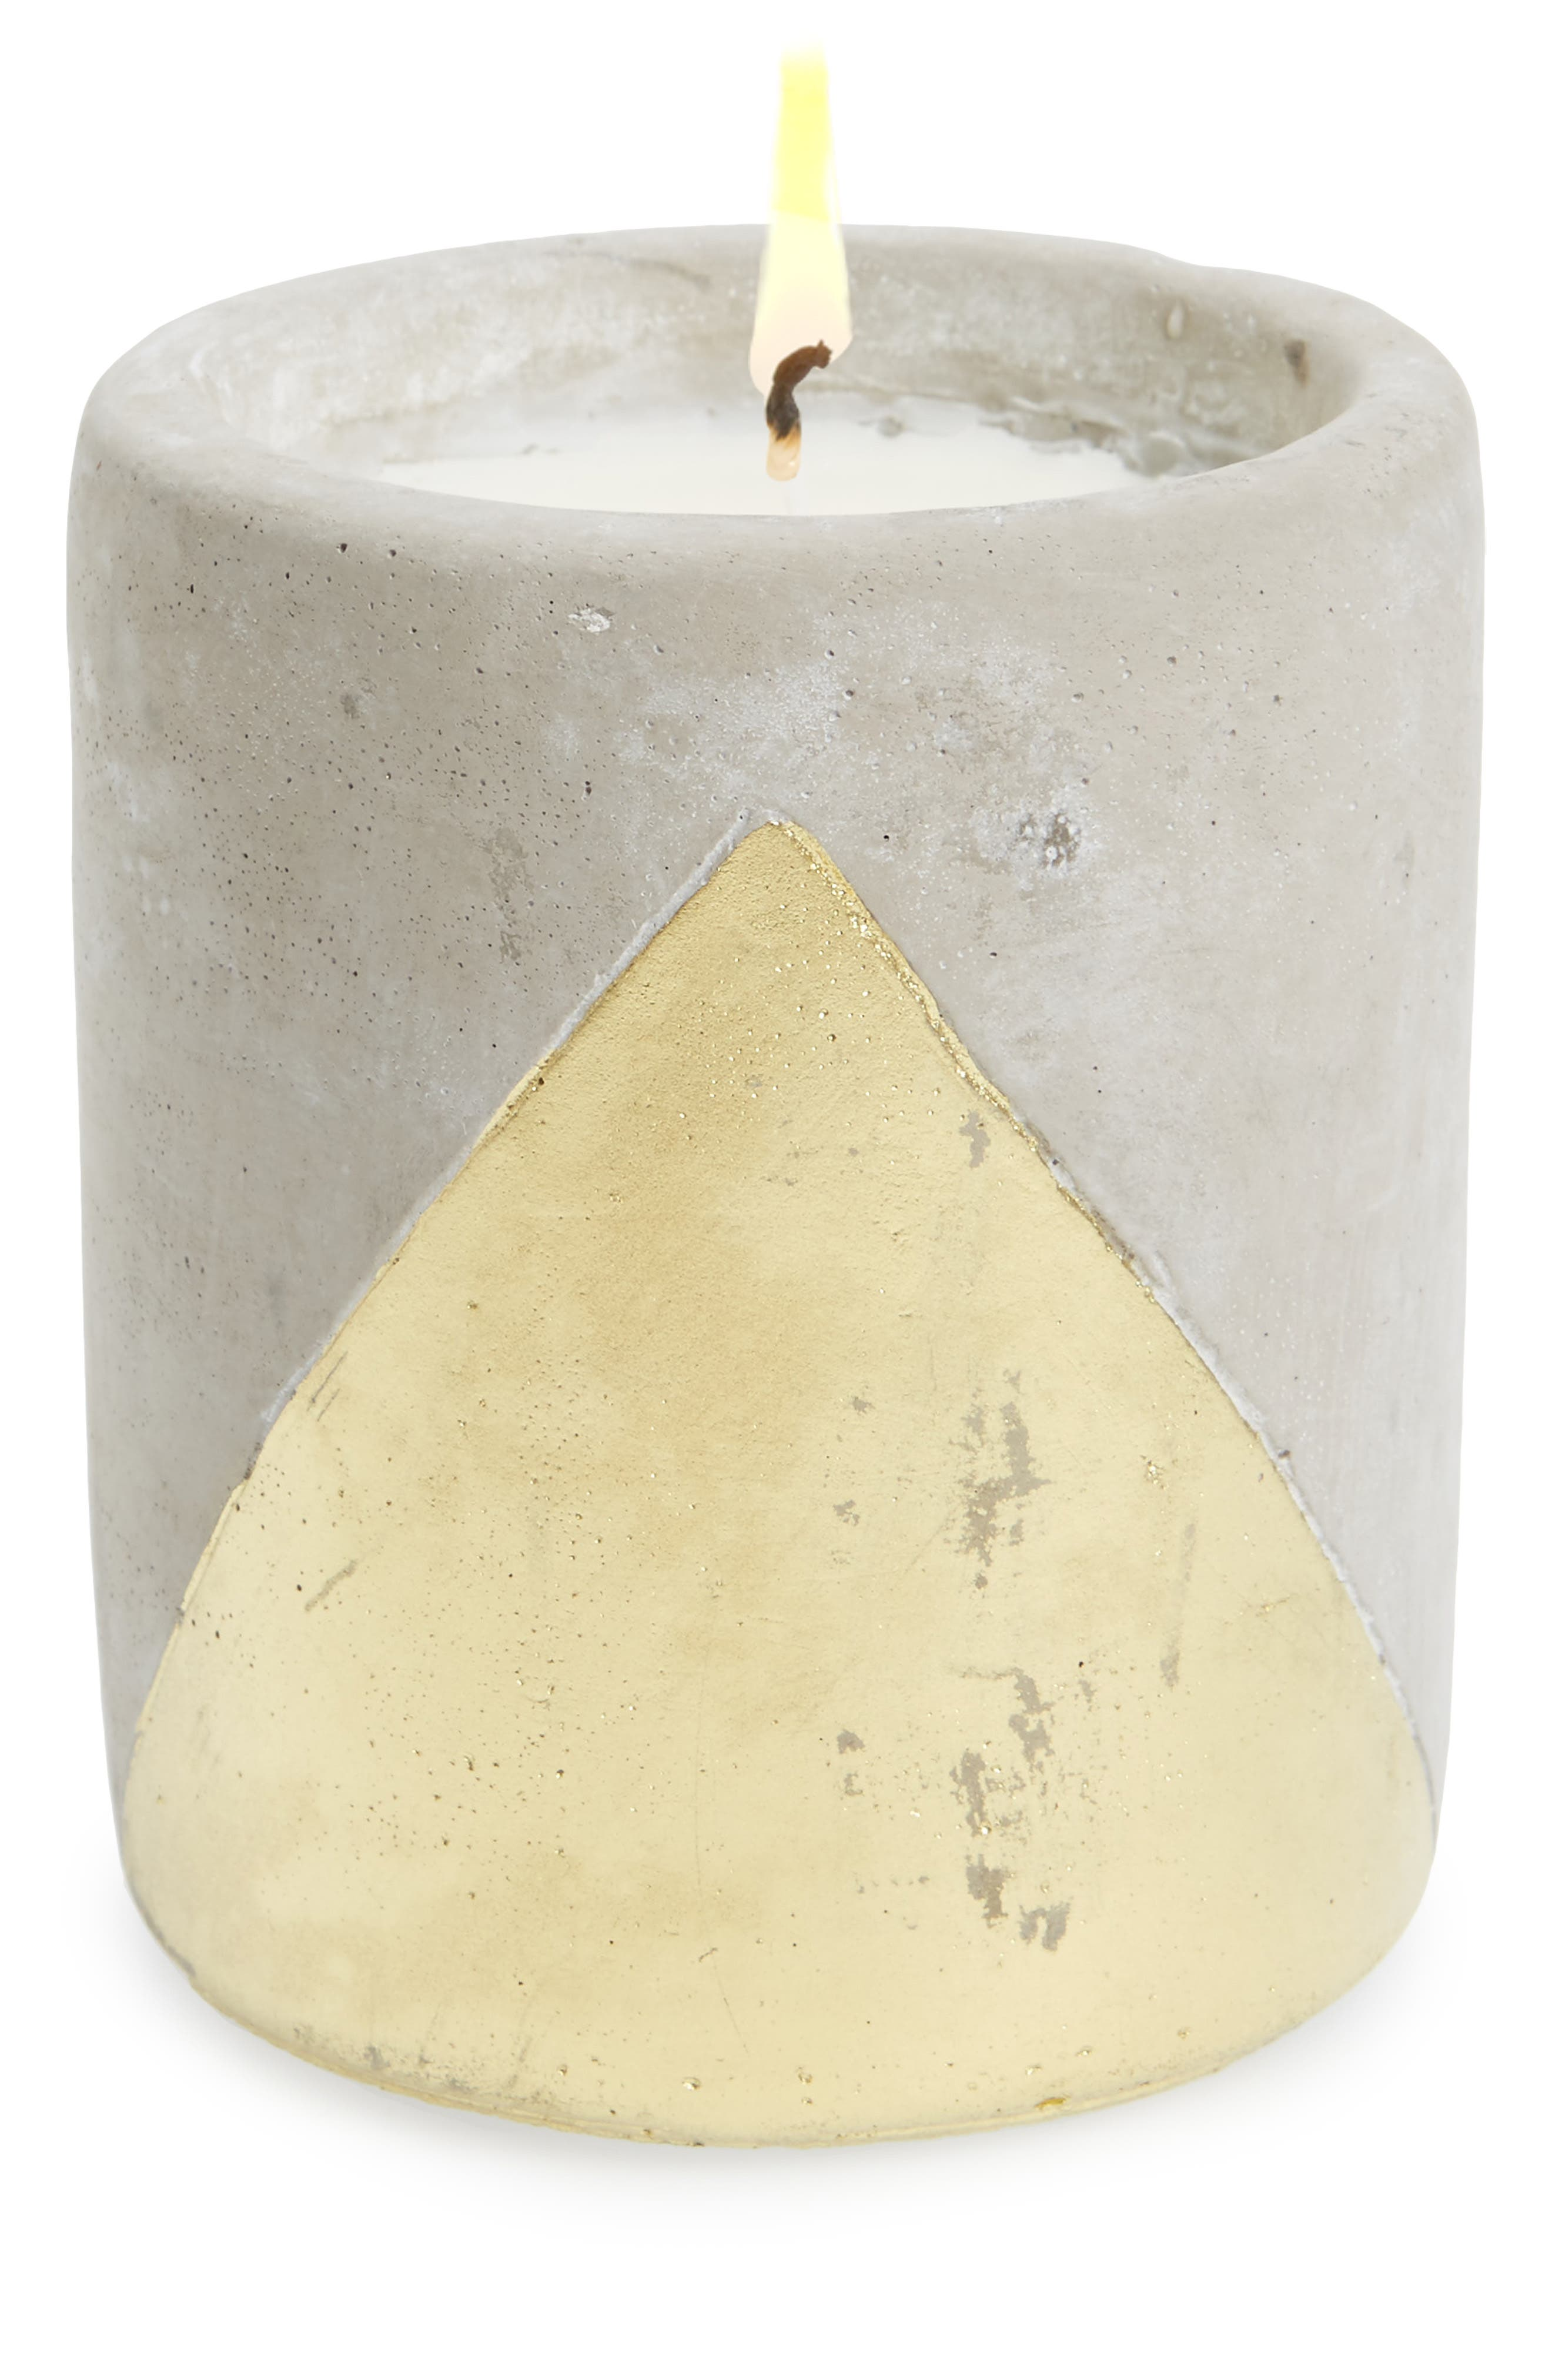 Alternate Image 1 Selected - Paddywax Urban Concrete Soy Wax Candle